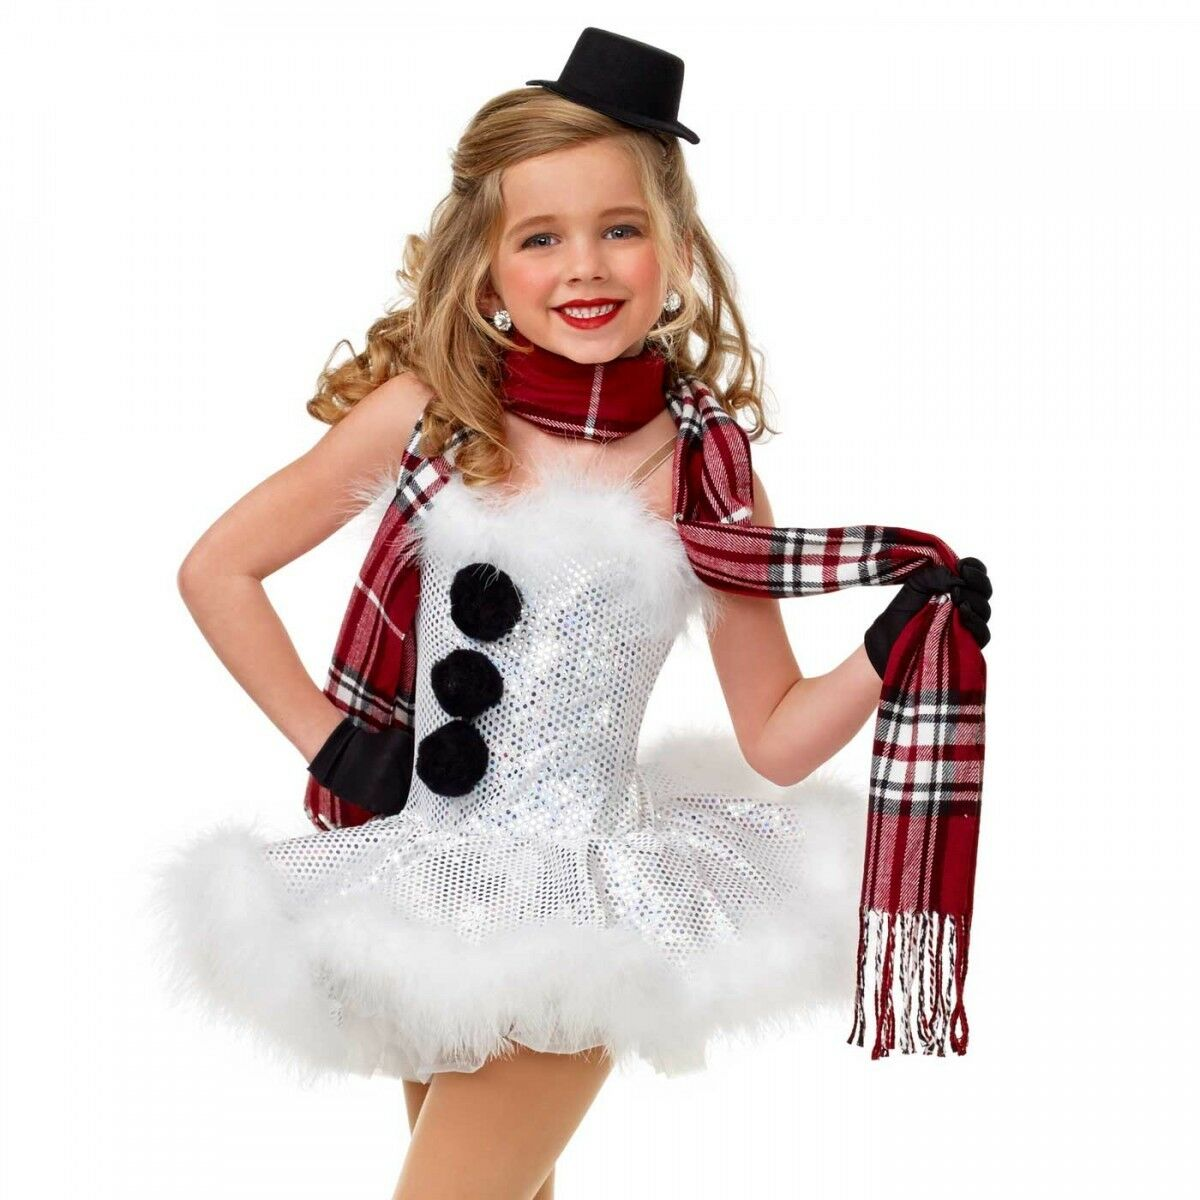 NEUE FIGURE ICE SKATING BATON Two IRLING HOLIDAY COSTUME weißnachten SNOWMAN DANCE